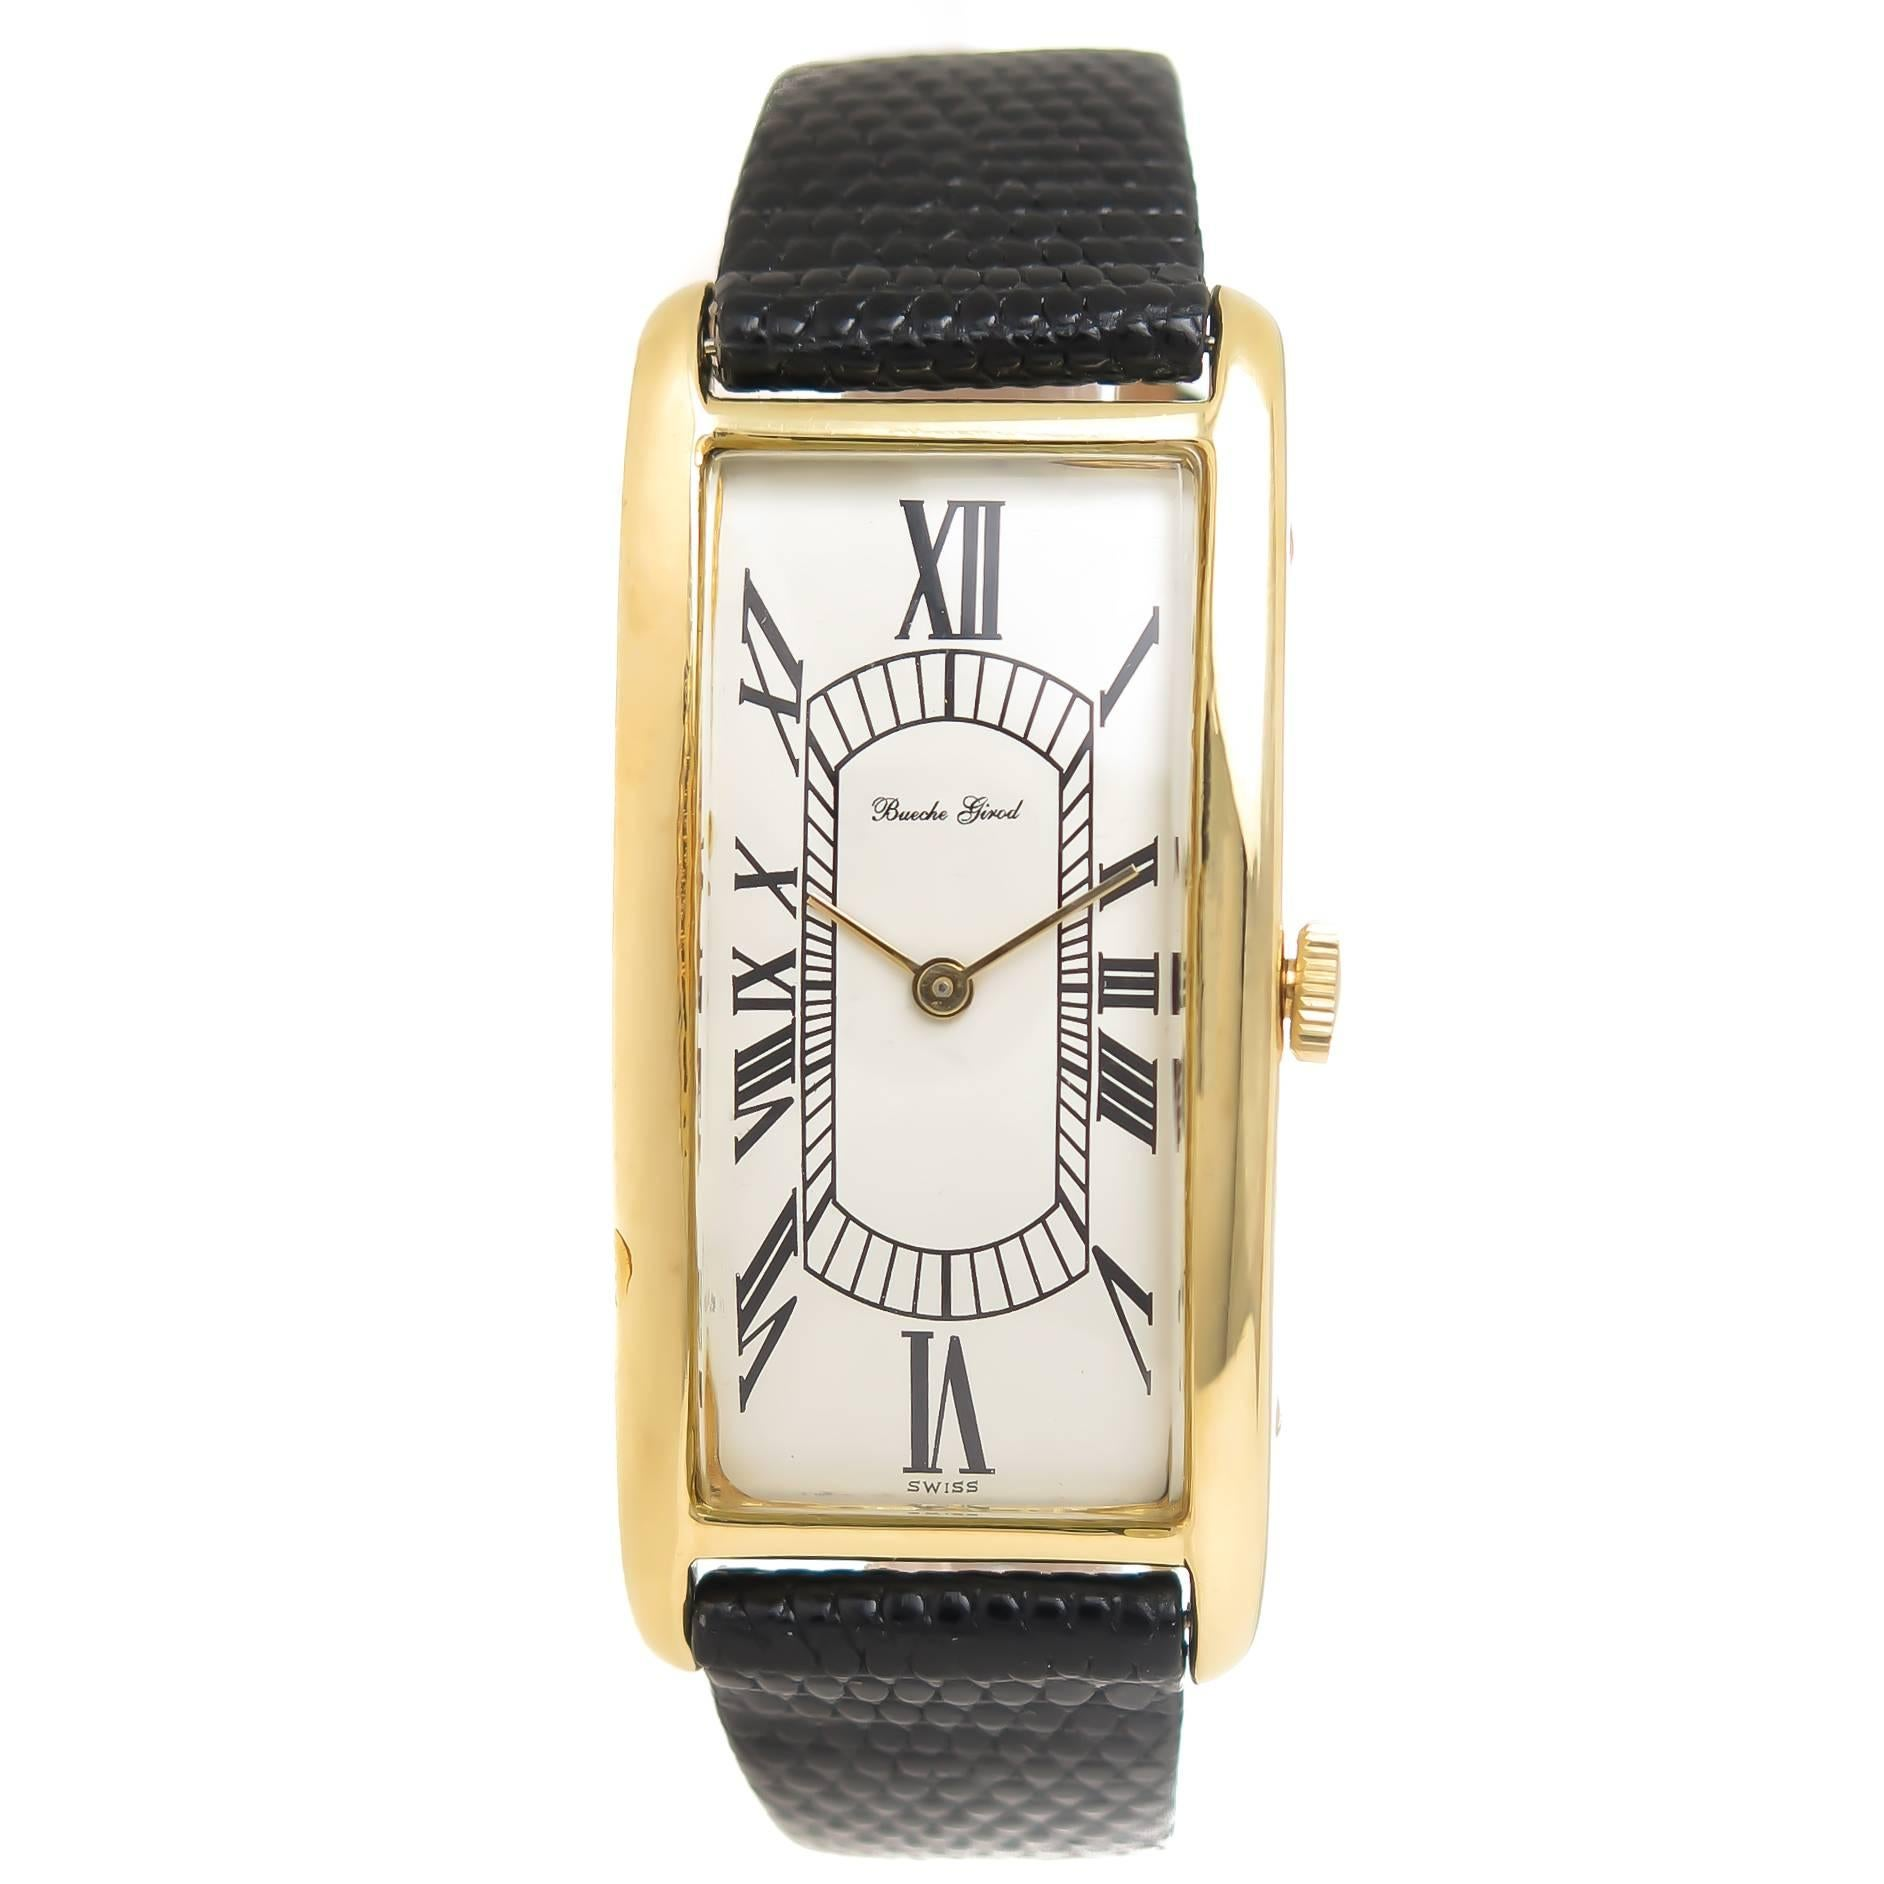 watches christie online jewels bueche girod watch christies s eco gold